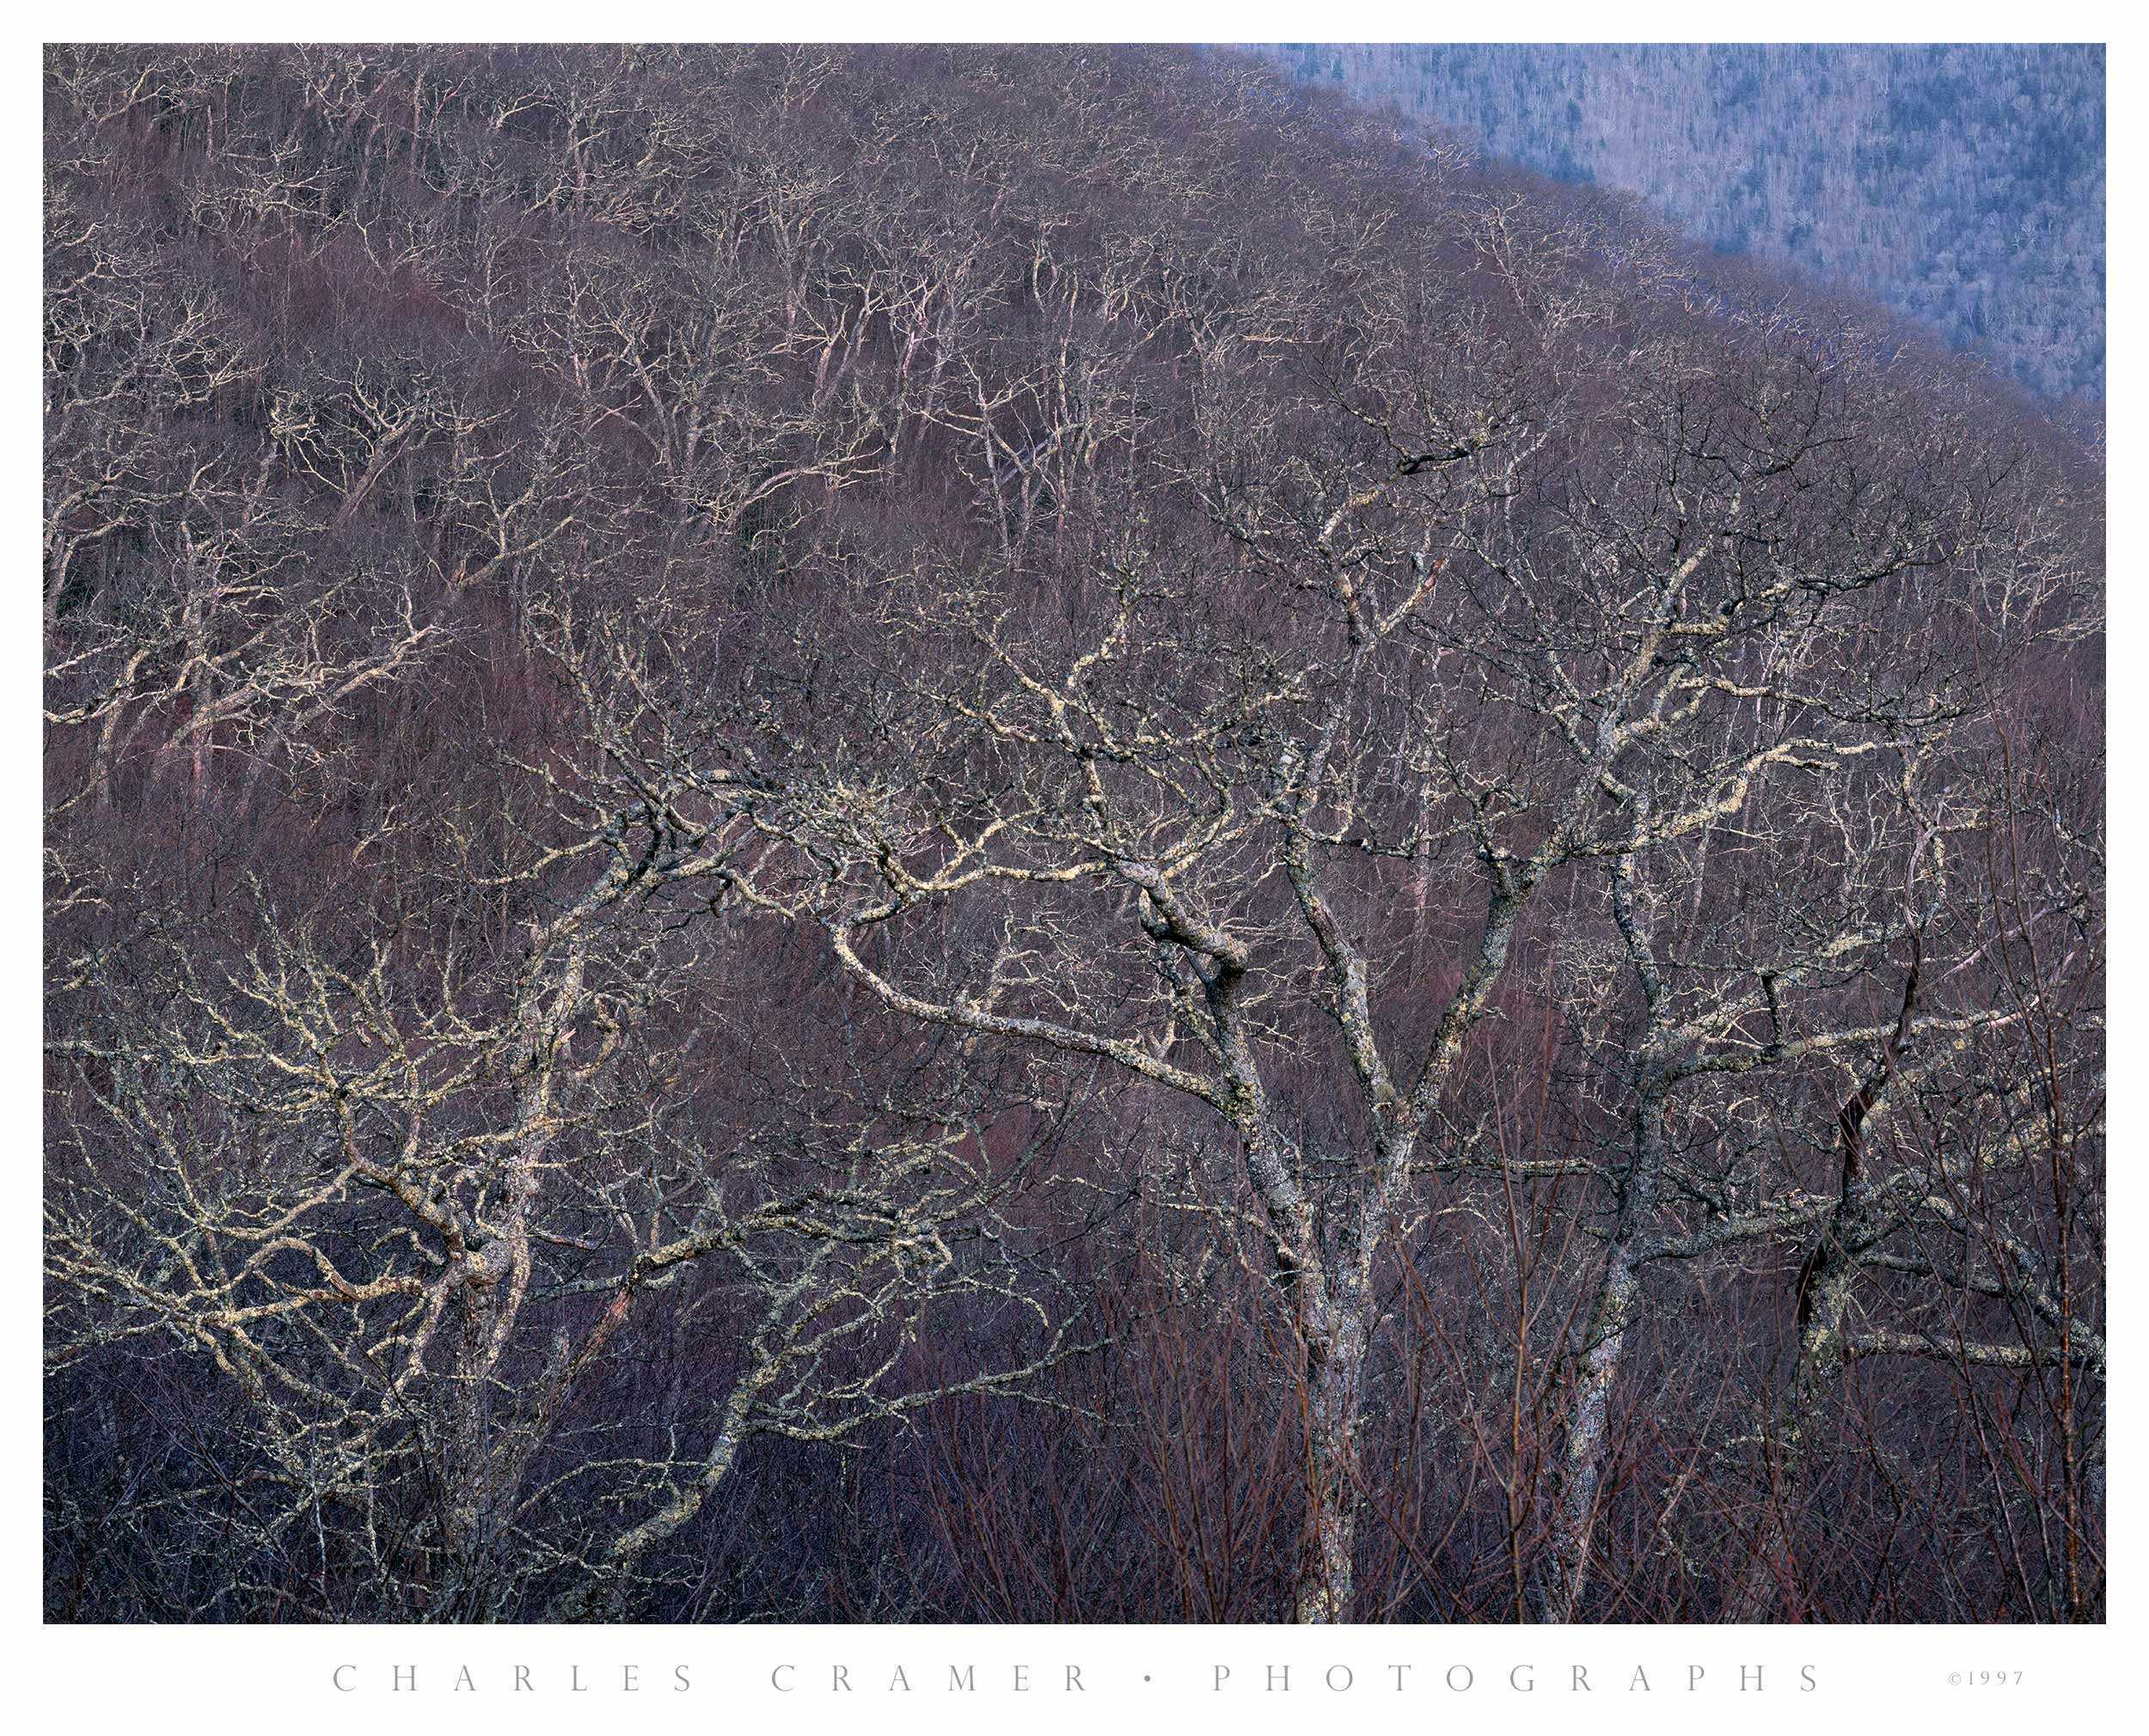 Sea of Trees, Early Spring, Blue Ridge Parkway